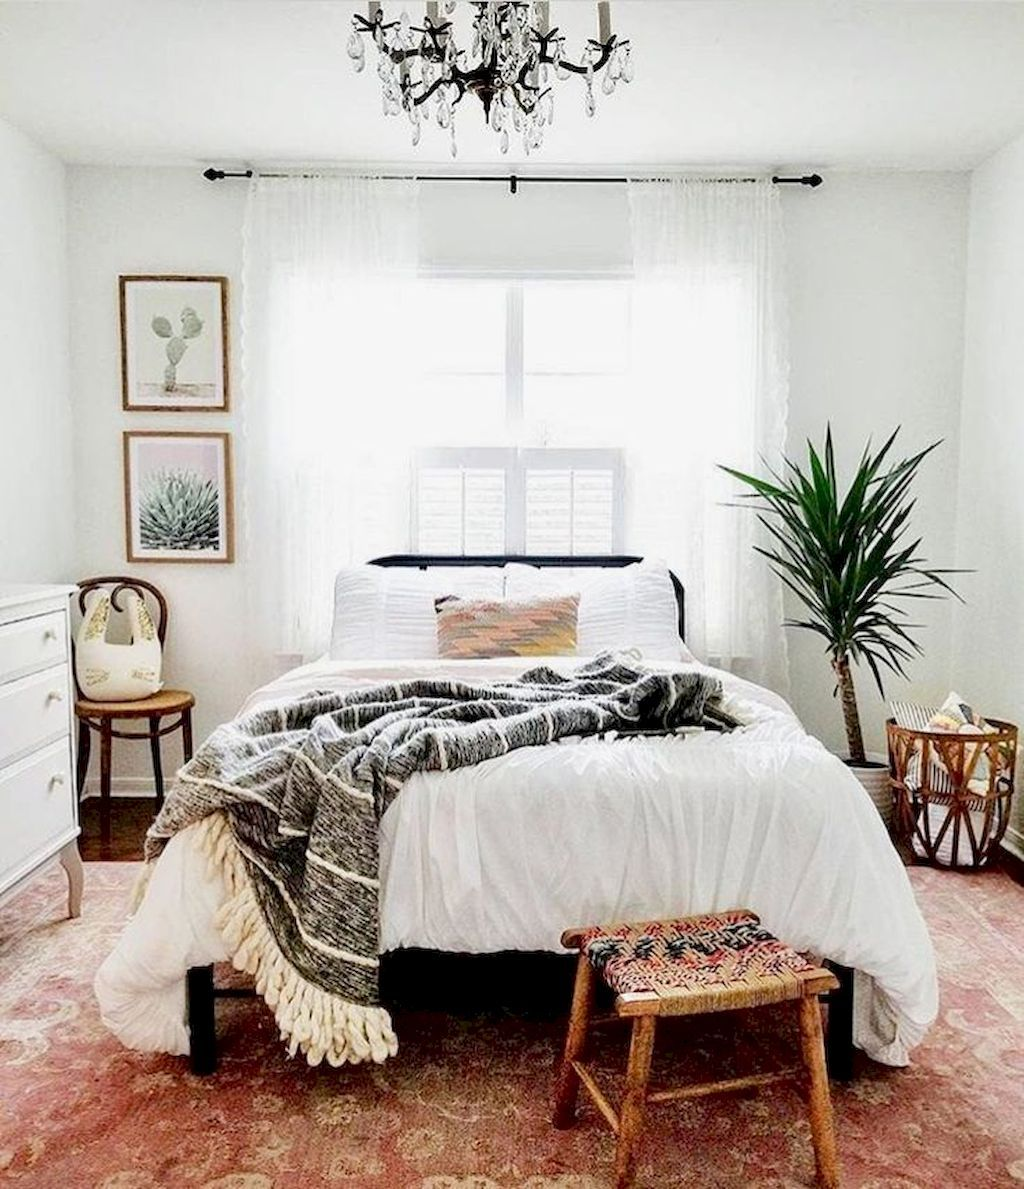 Relaxing Bedroom Designs With Natural Decorations Elonahome Com